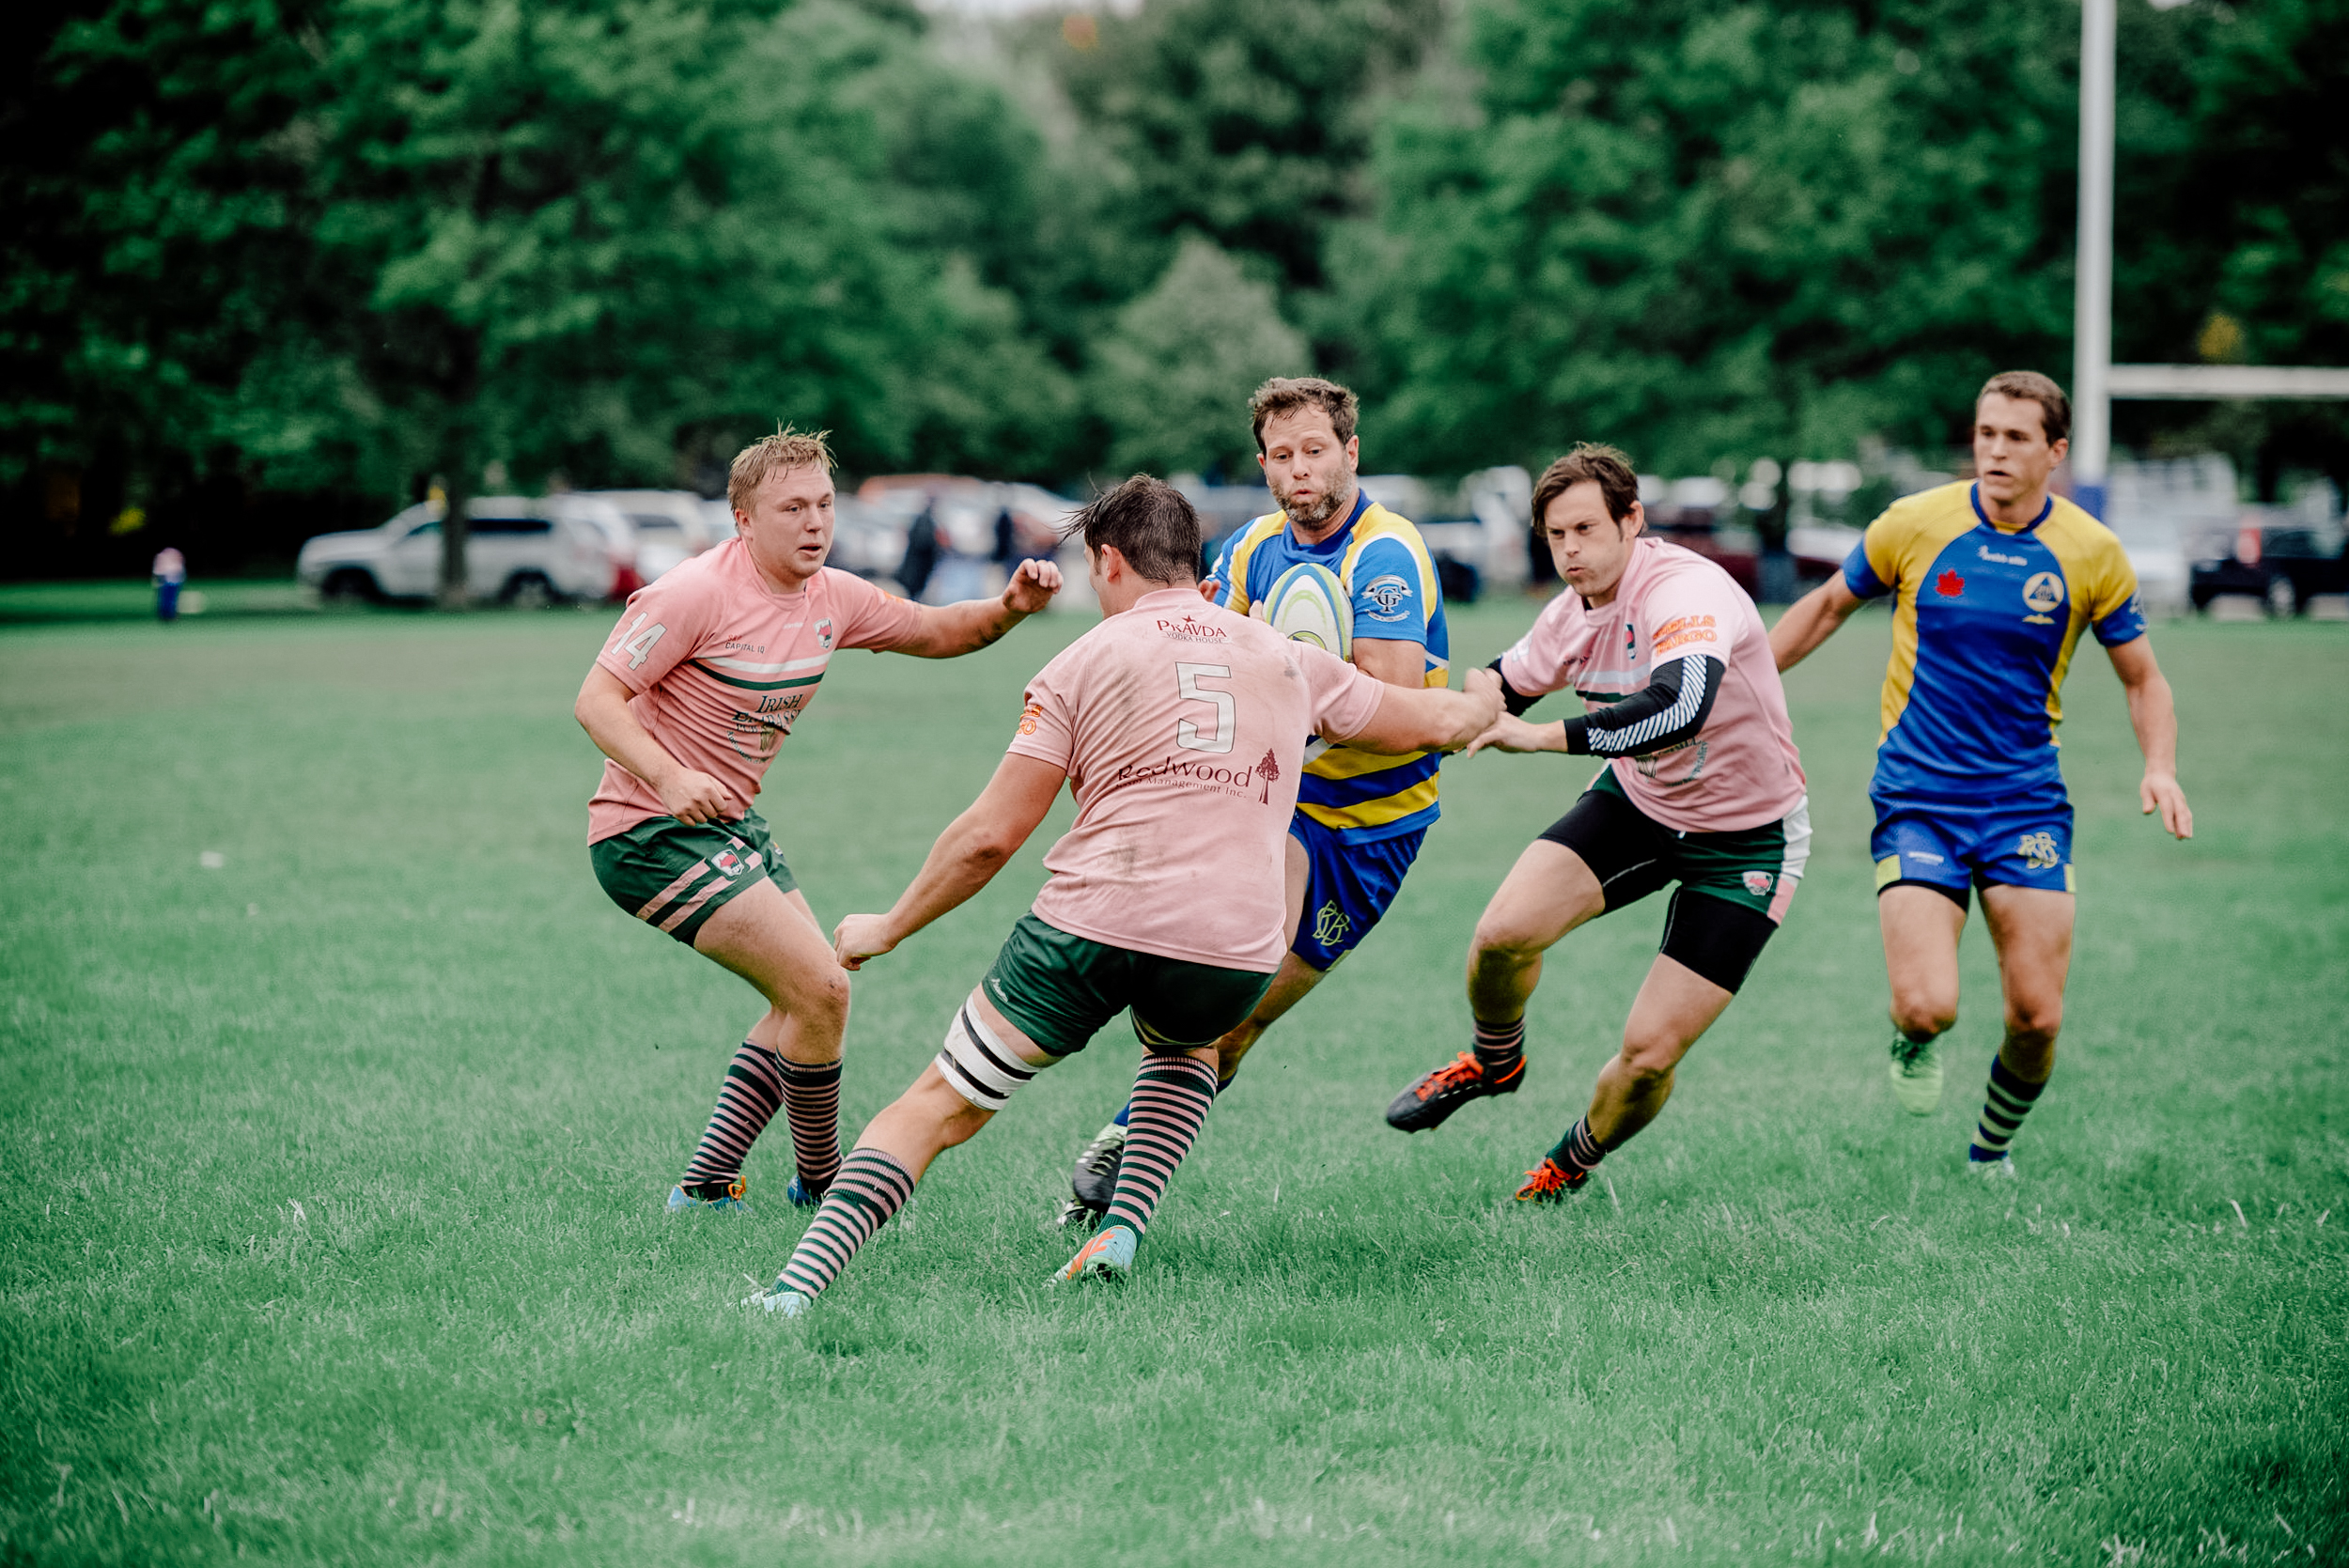 Toronto Rugby Photographer